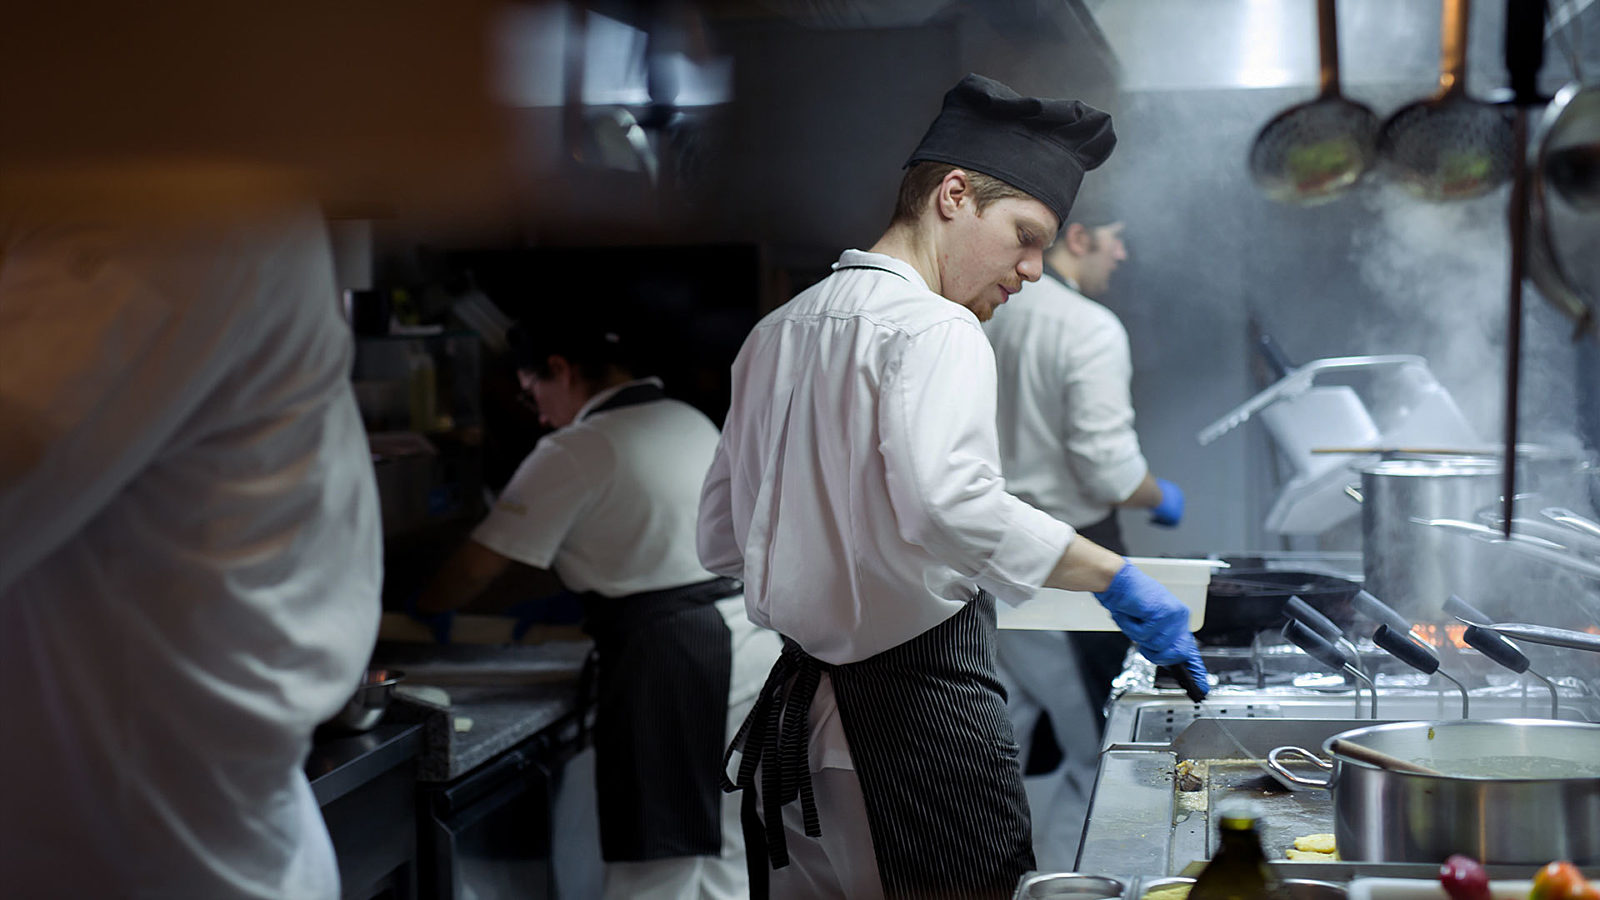 Line cook in the kitchen